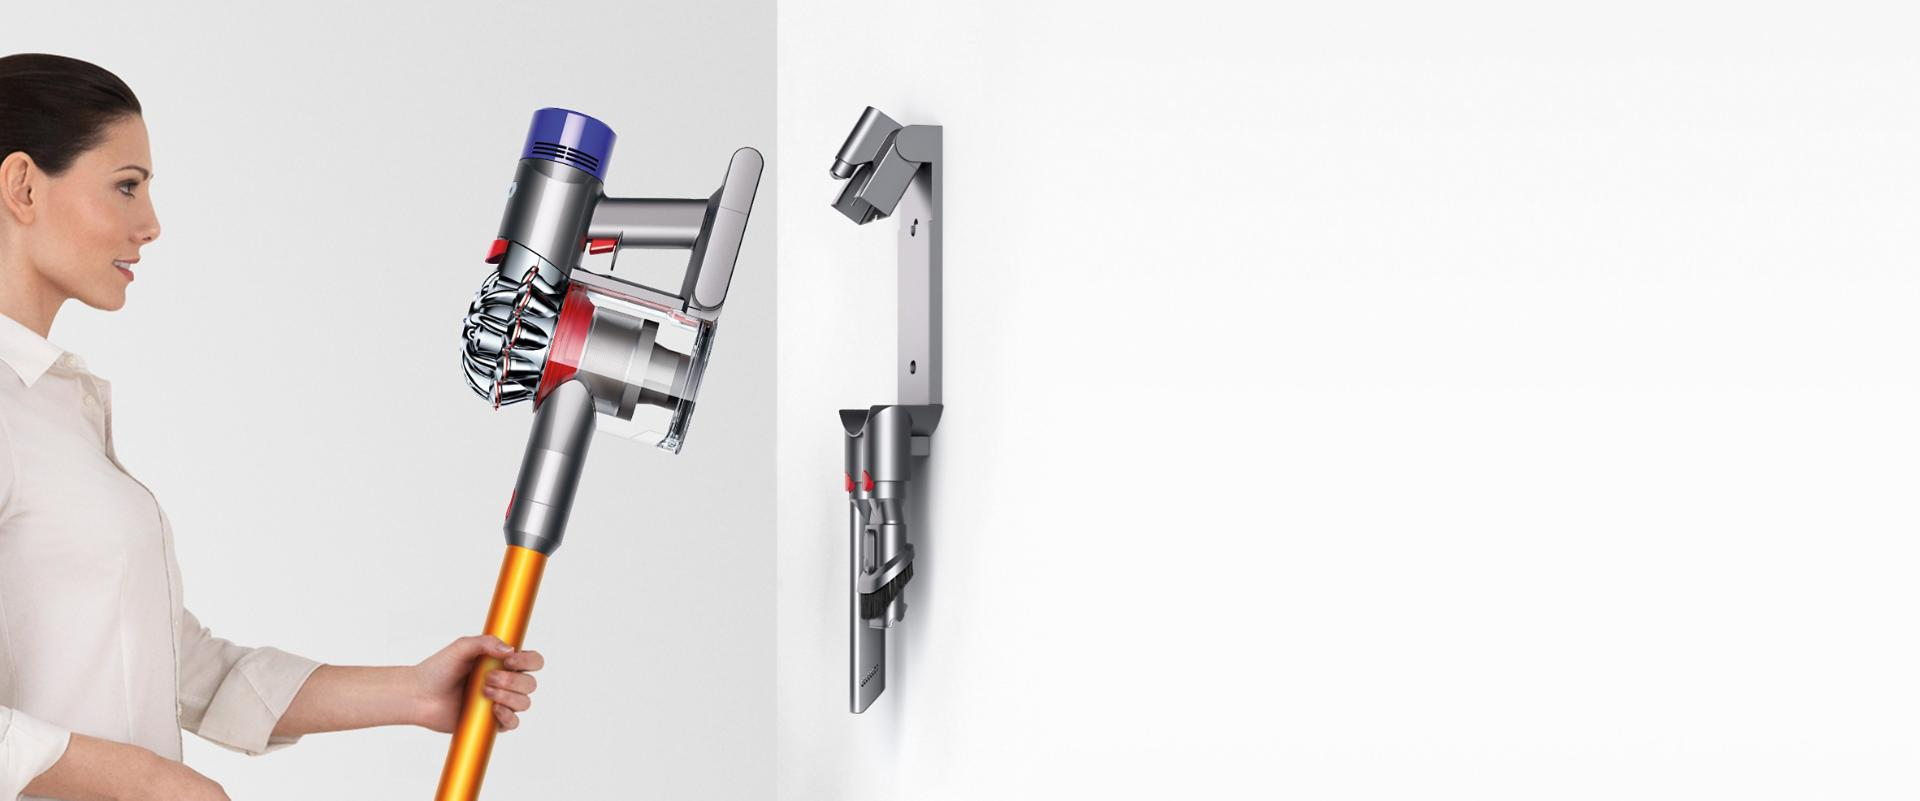 Dyson V8 being placed into wall mounted bracket